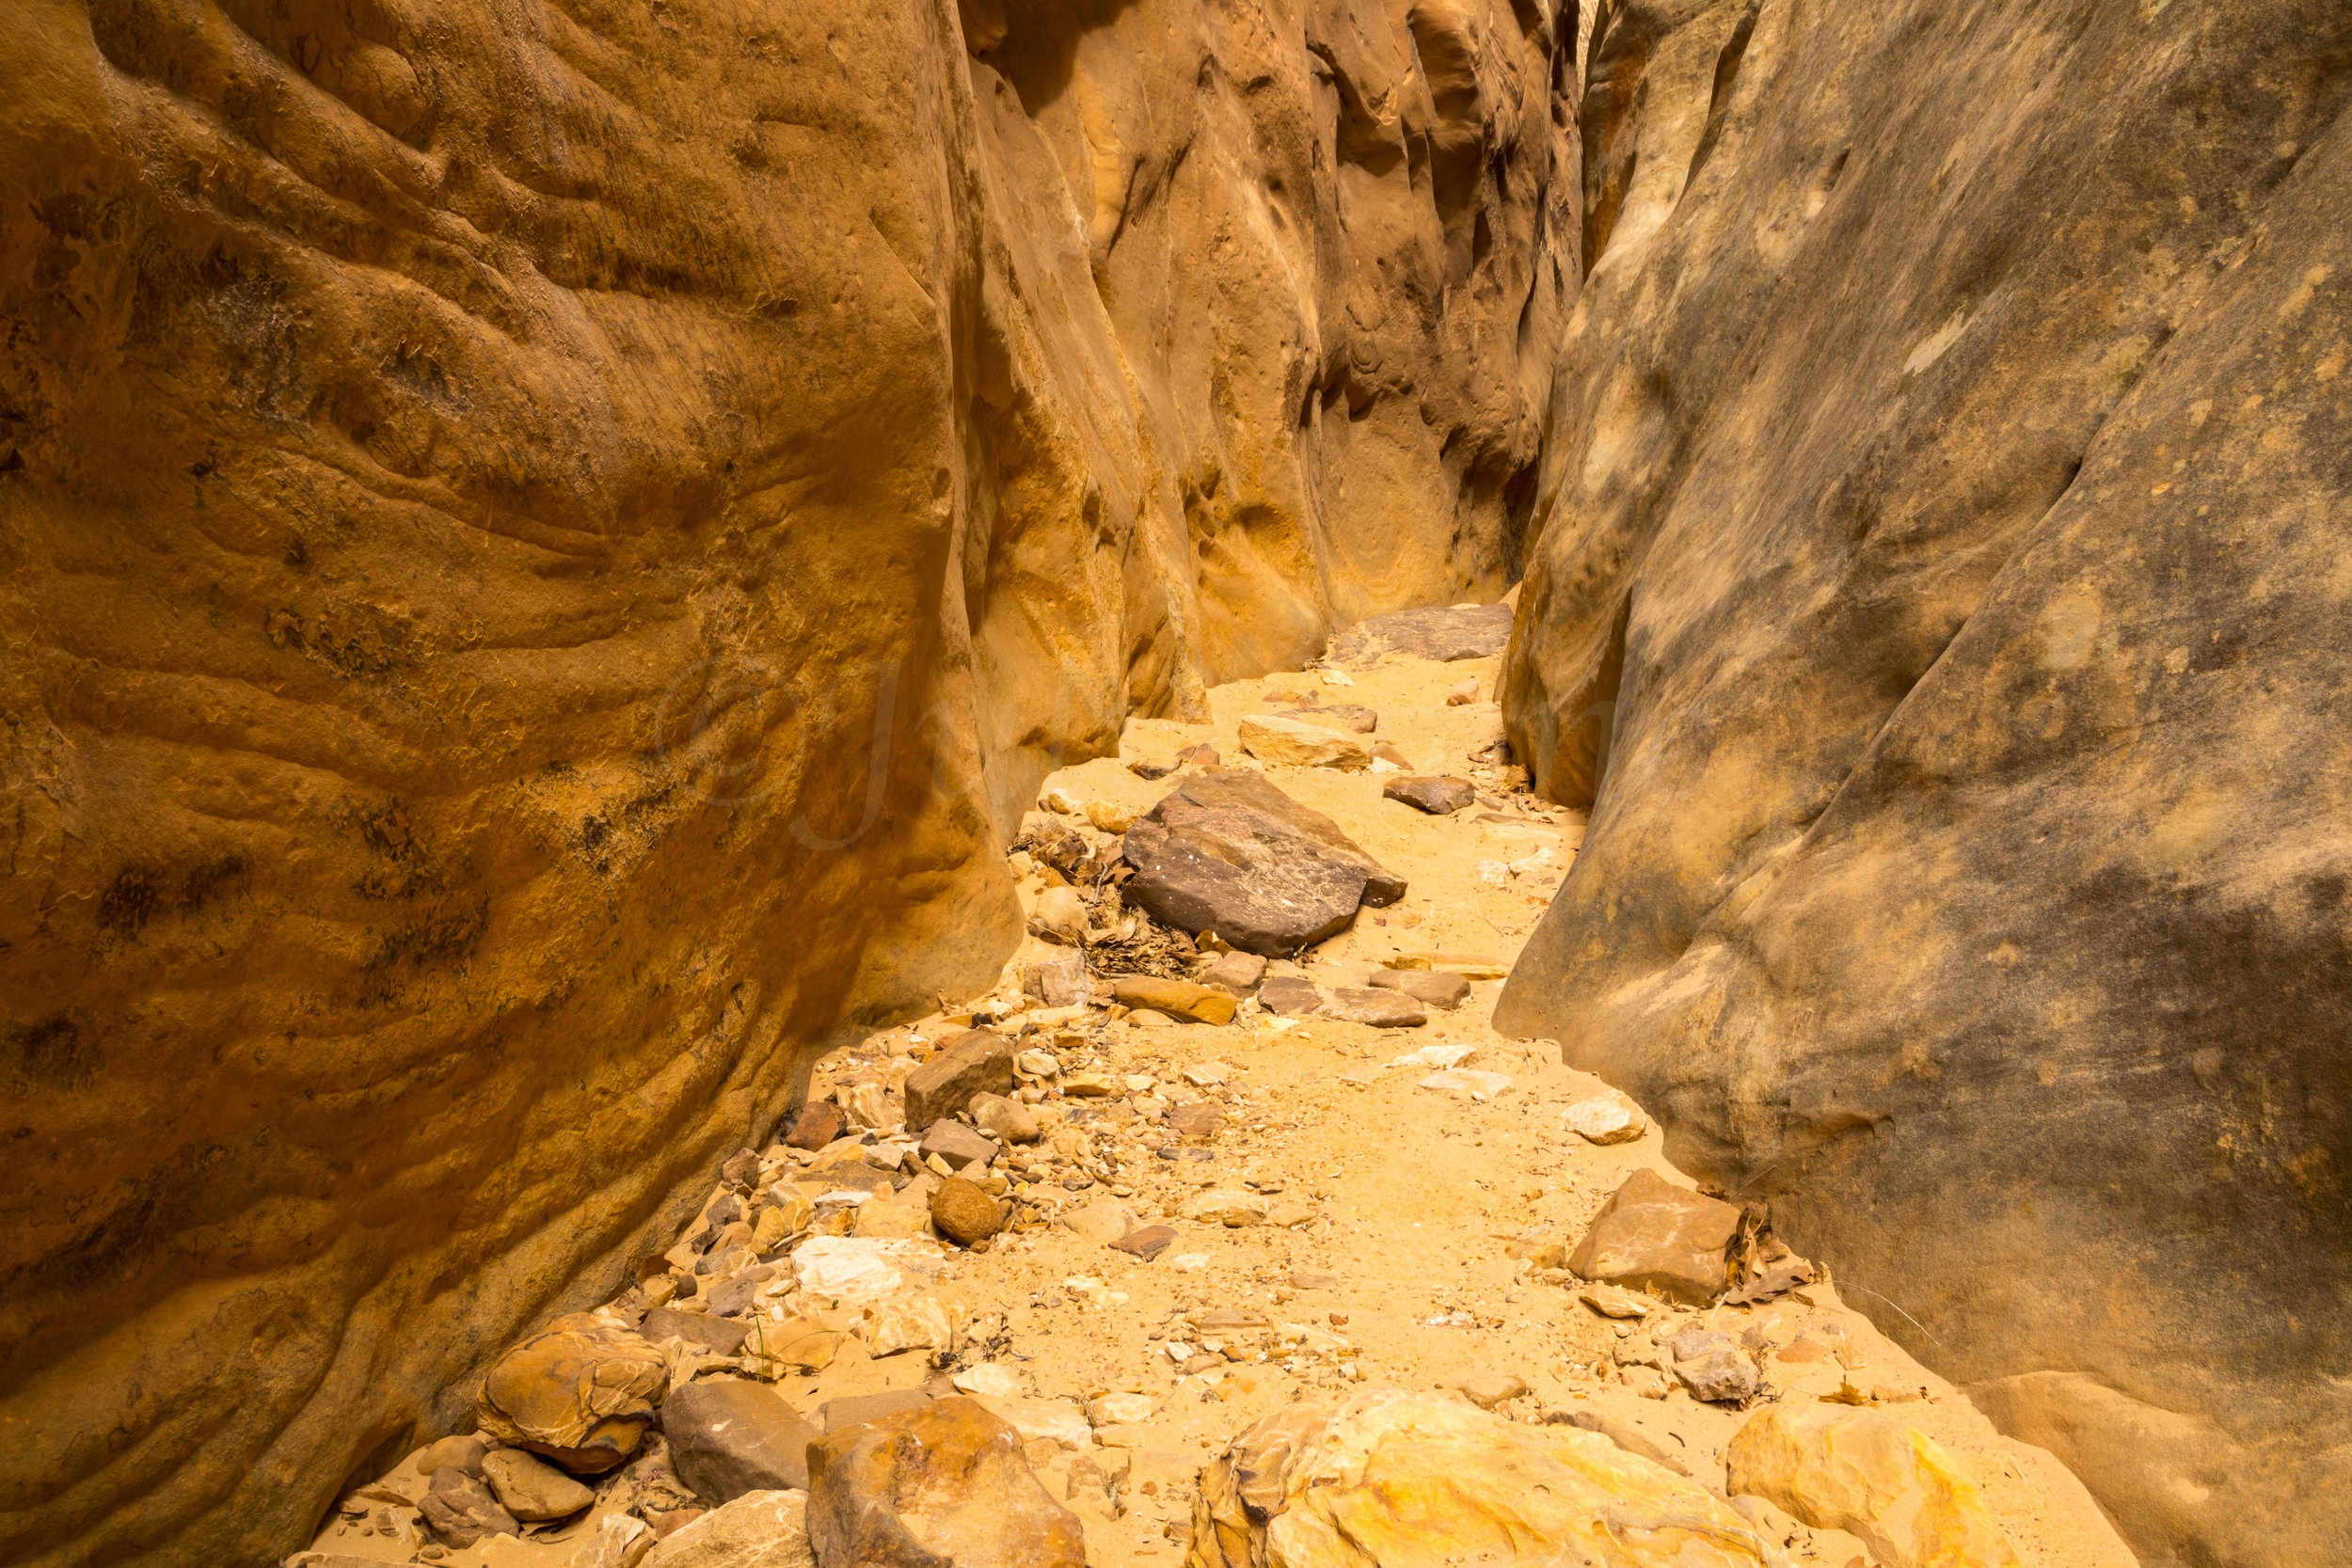 Capitol Reef National Park, Image # 4796